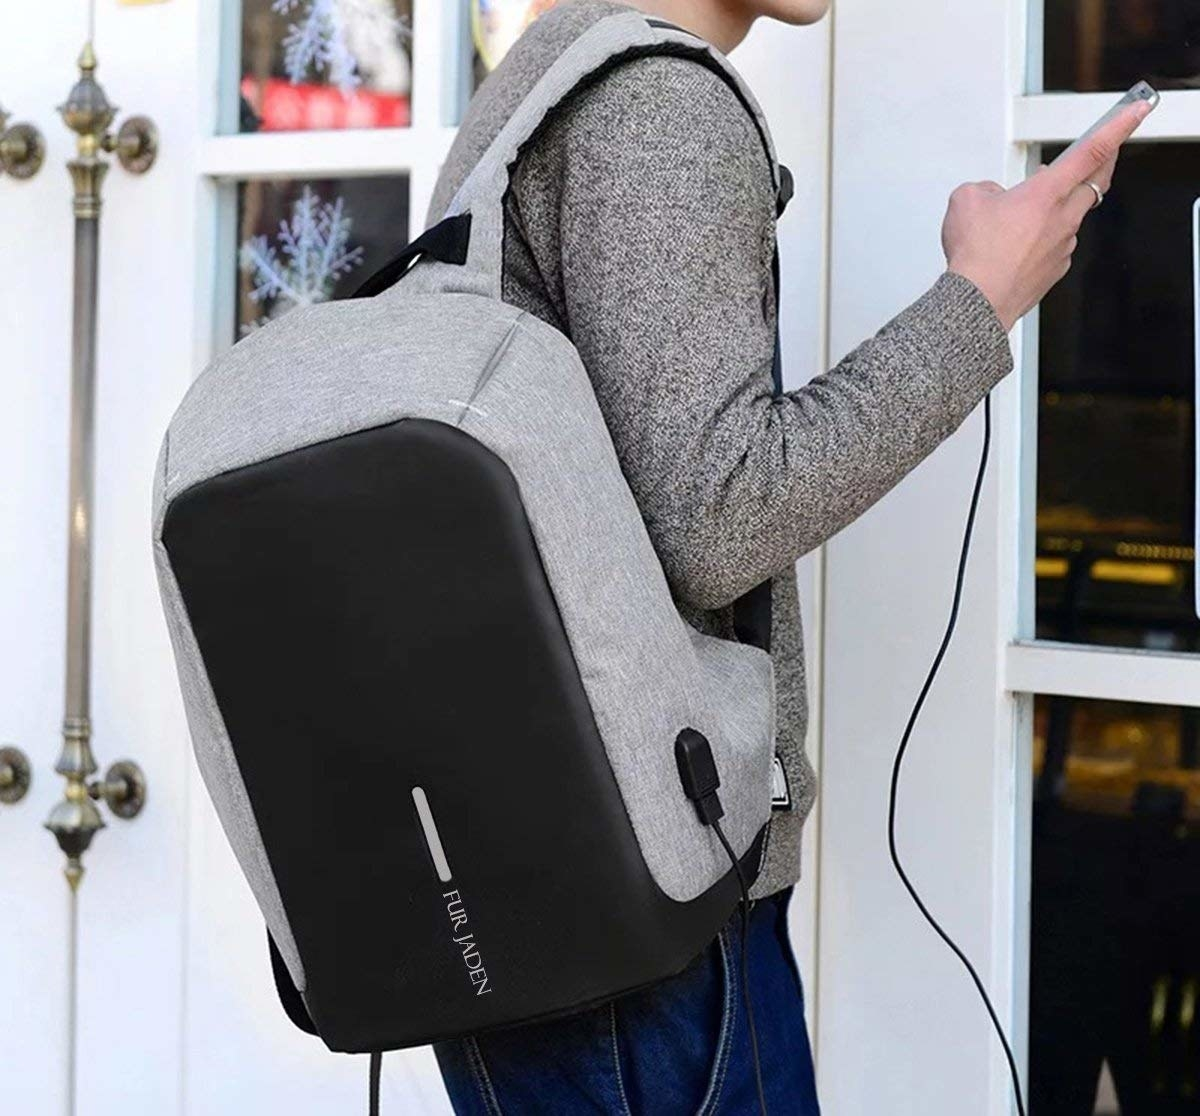 A person wearing the grey and black backpack, while a charging cable connects his phone to the bag